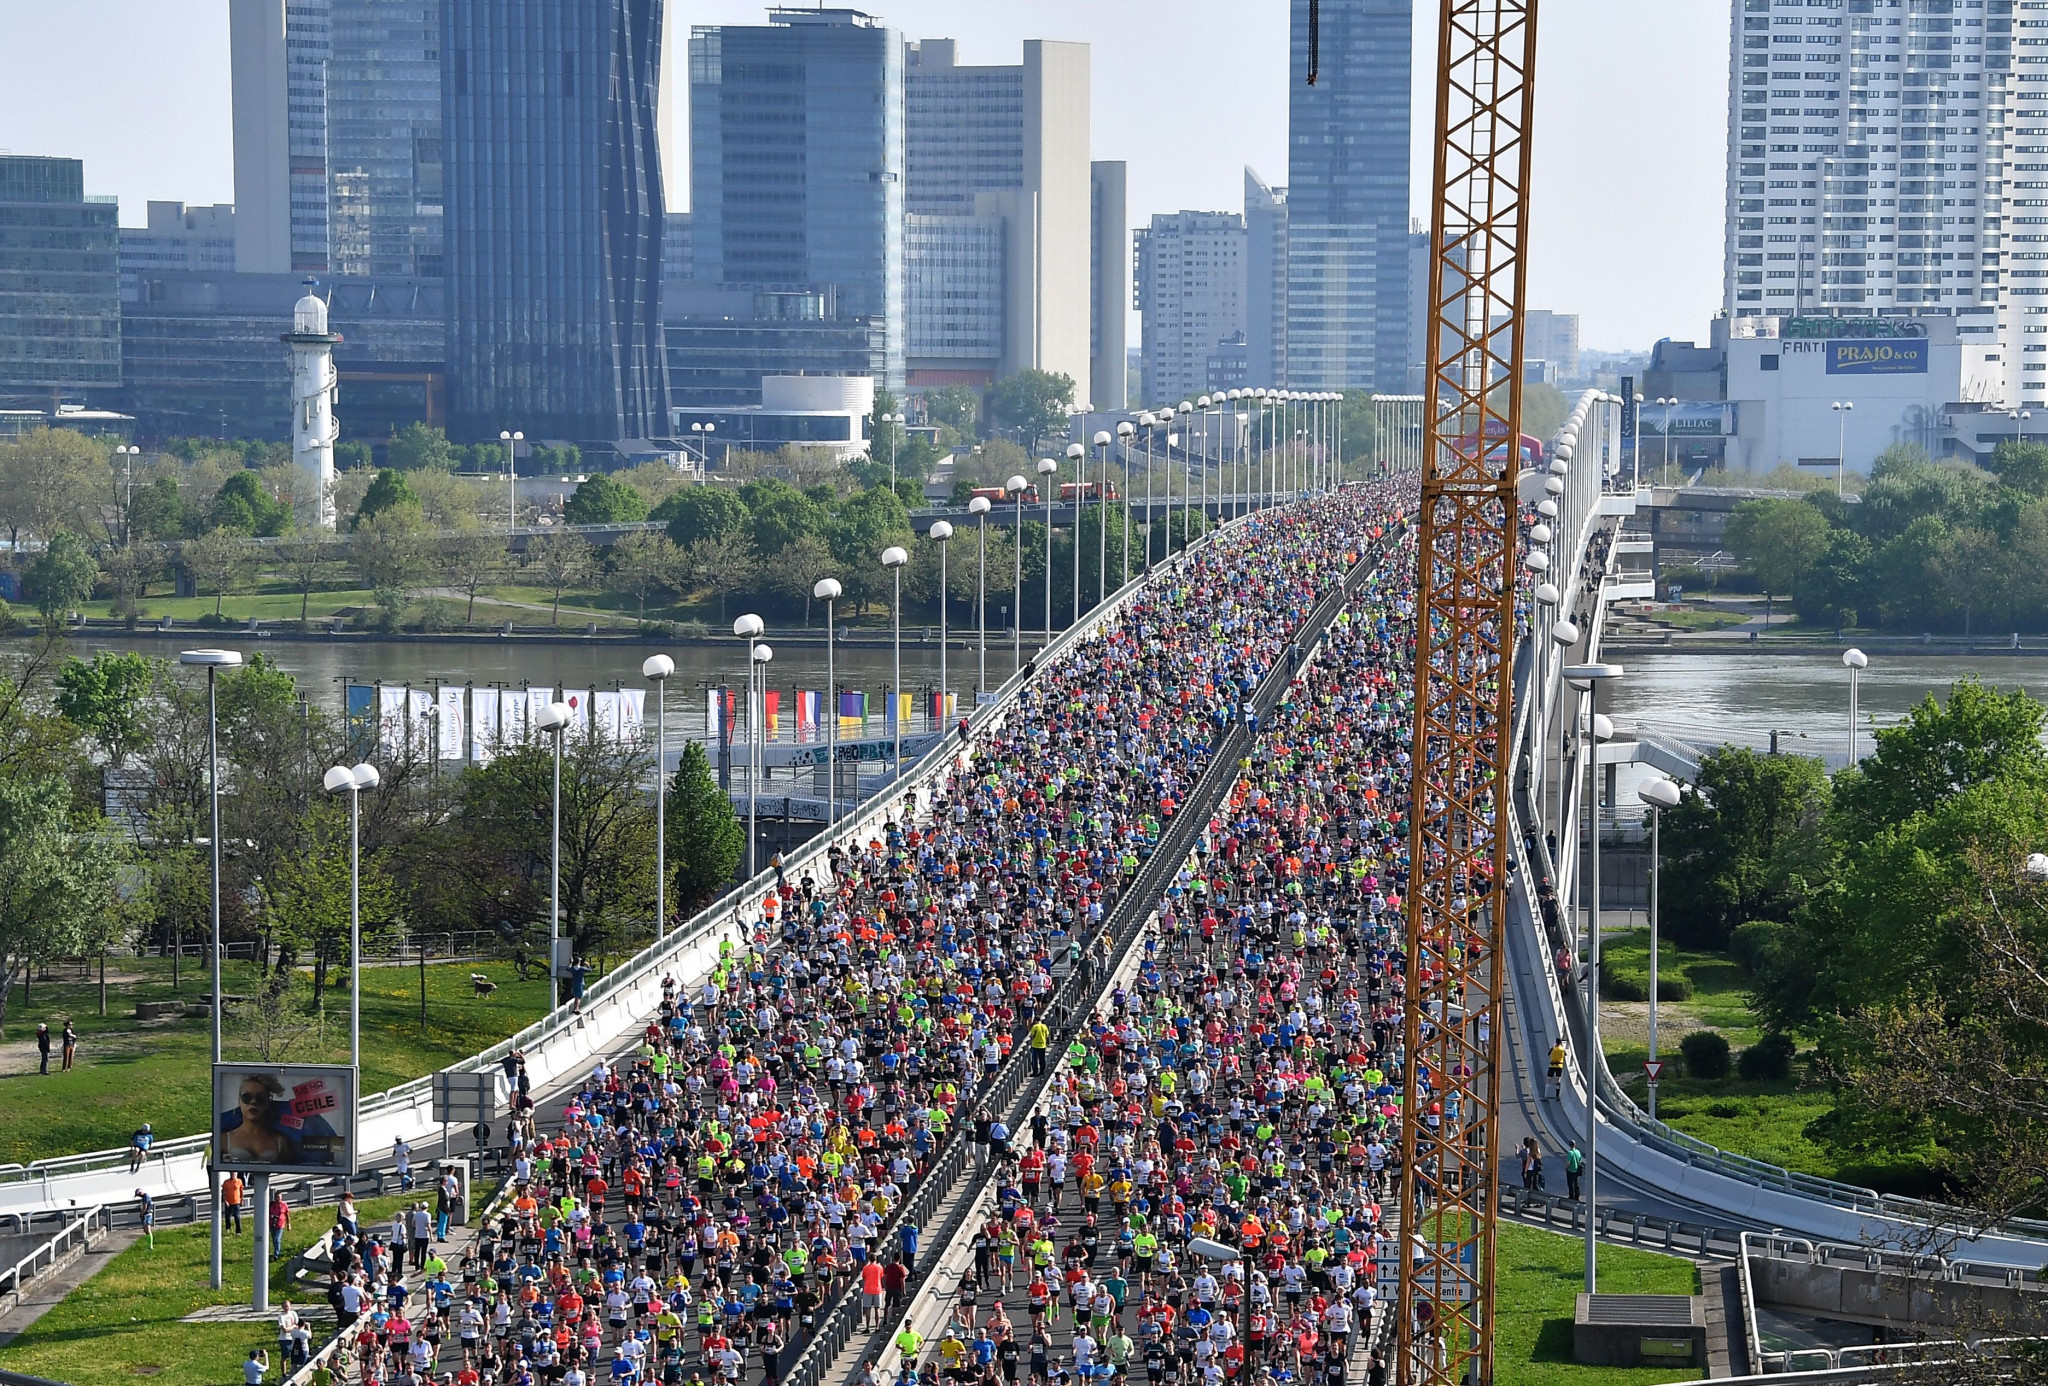 Vienna City Marathon pushed back from April to September 2021 due to COVID-19